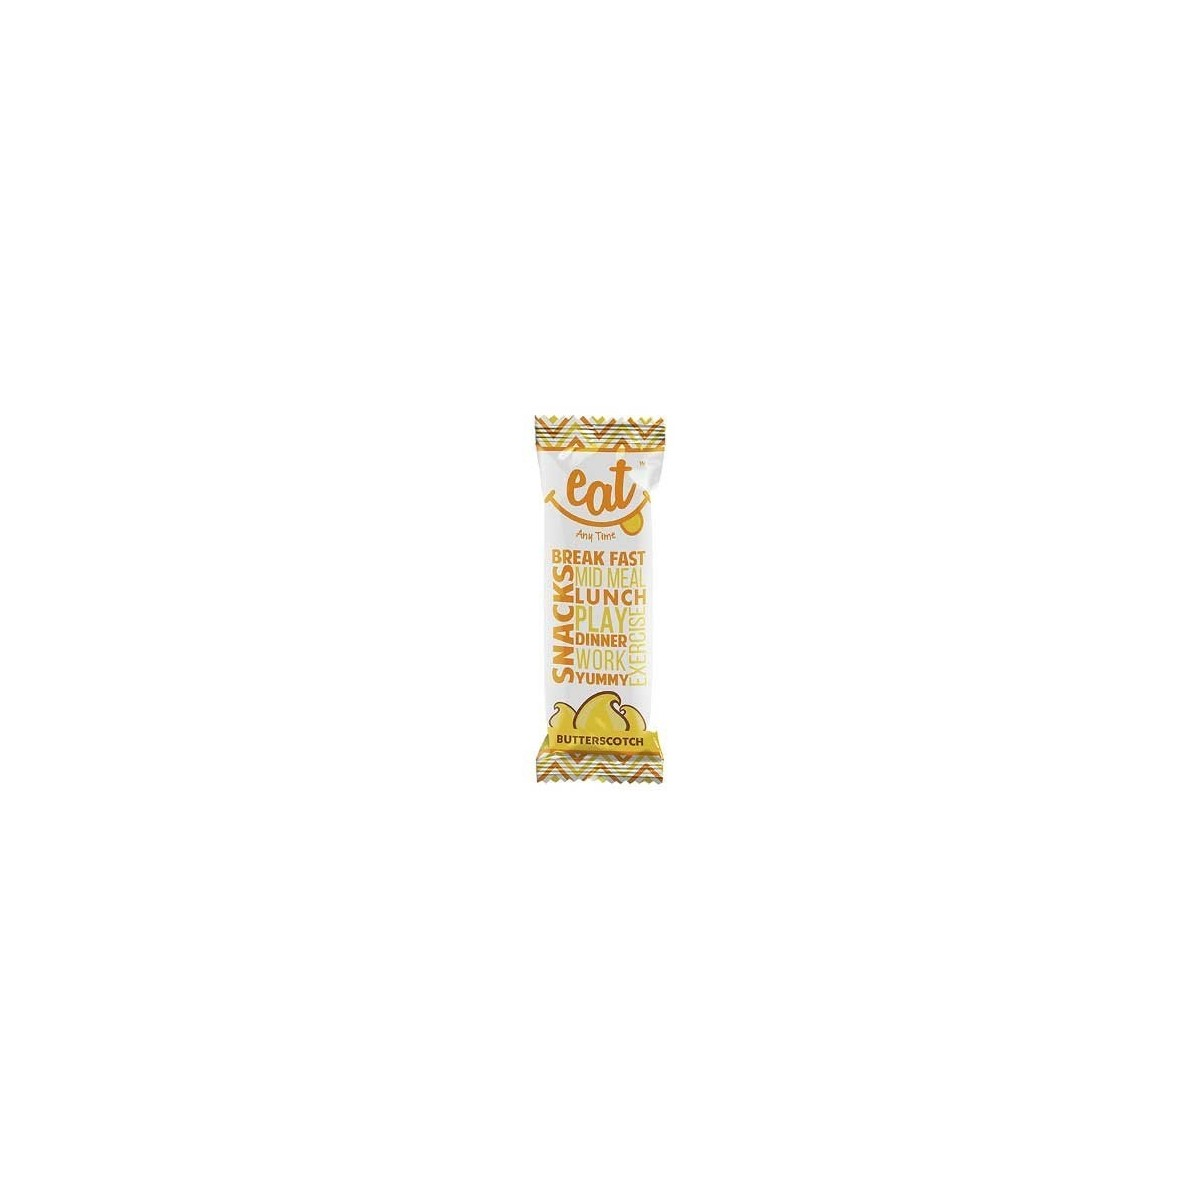 Eat Anytime Butterscotch Bars - Pack Of 6